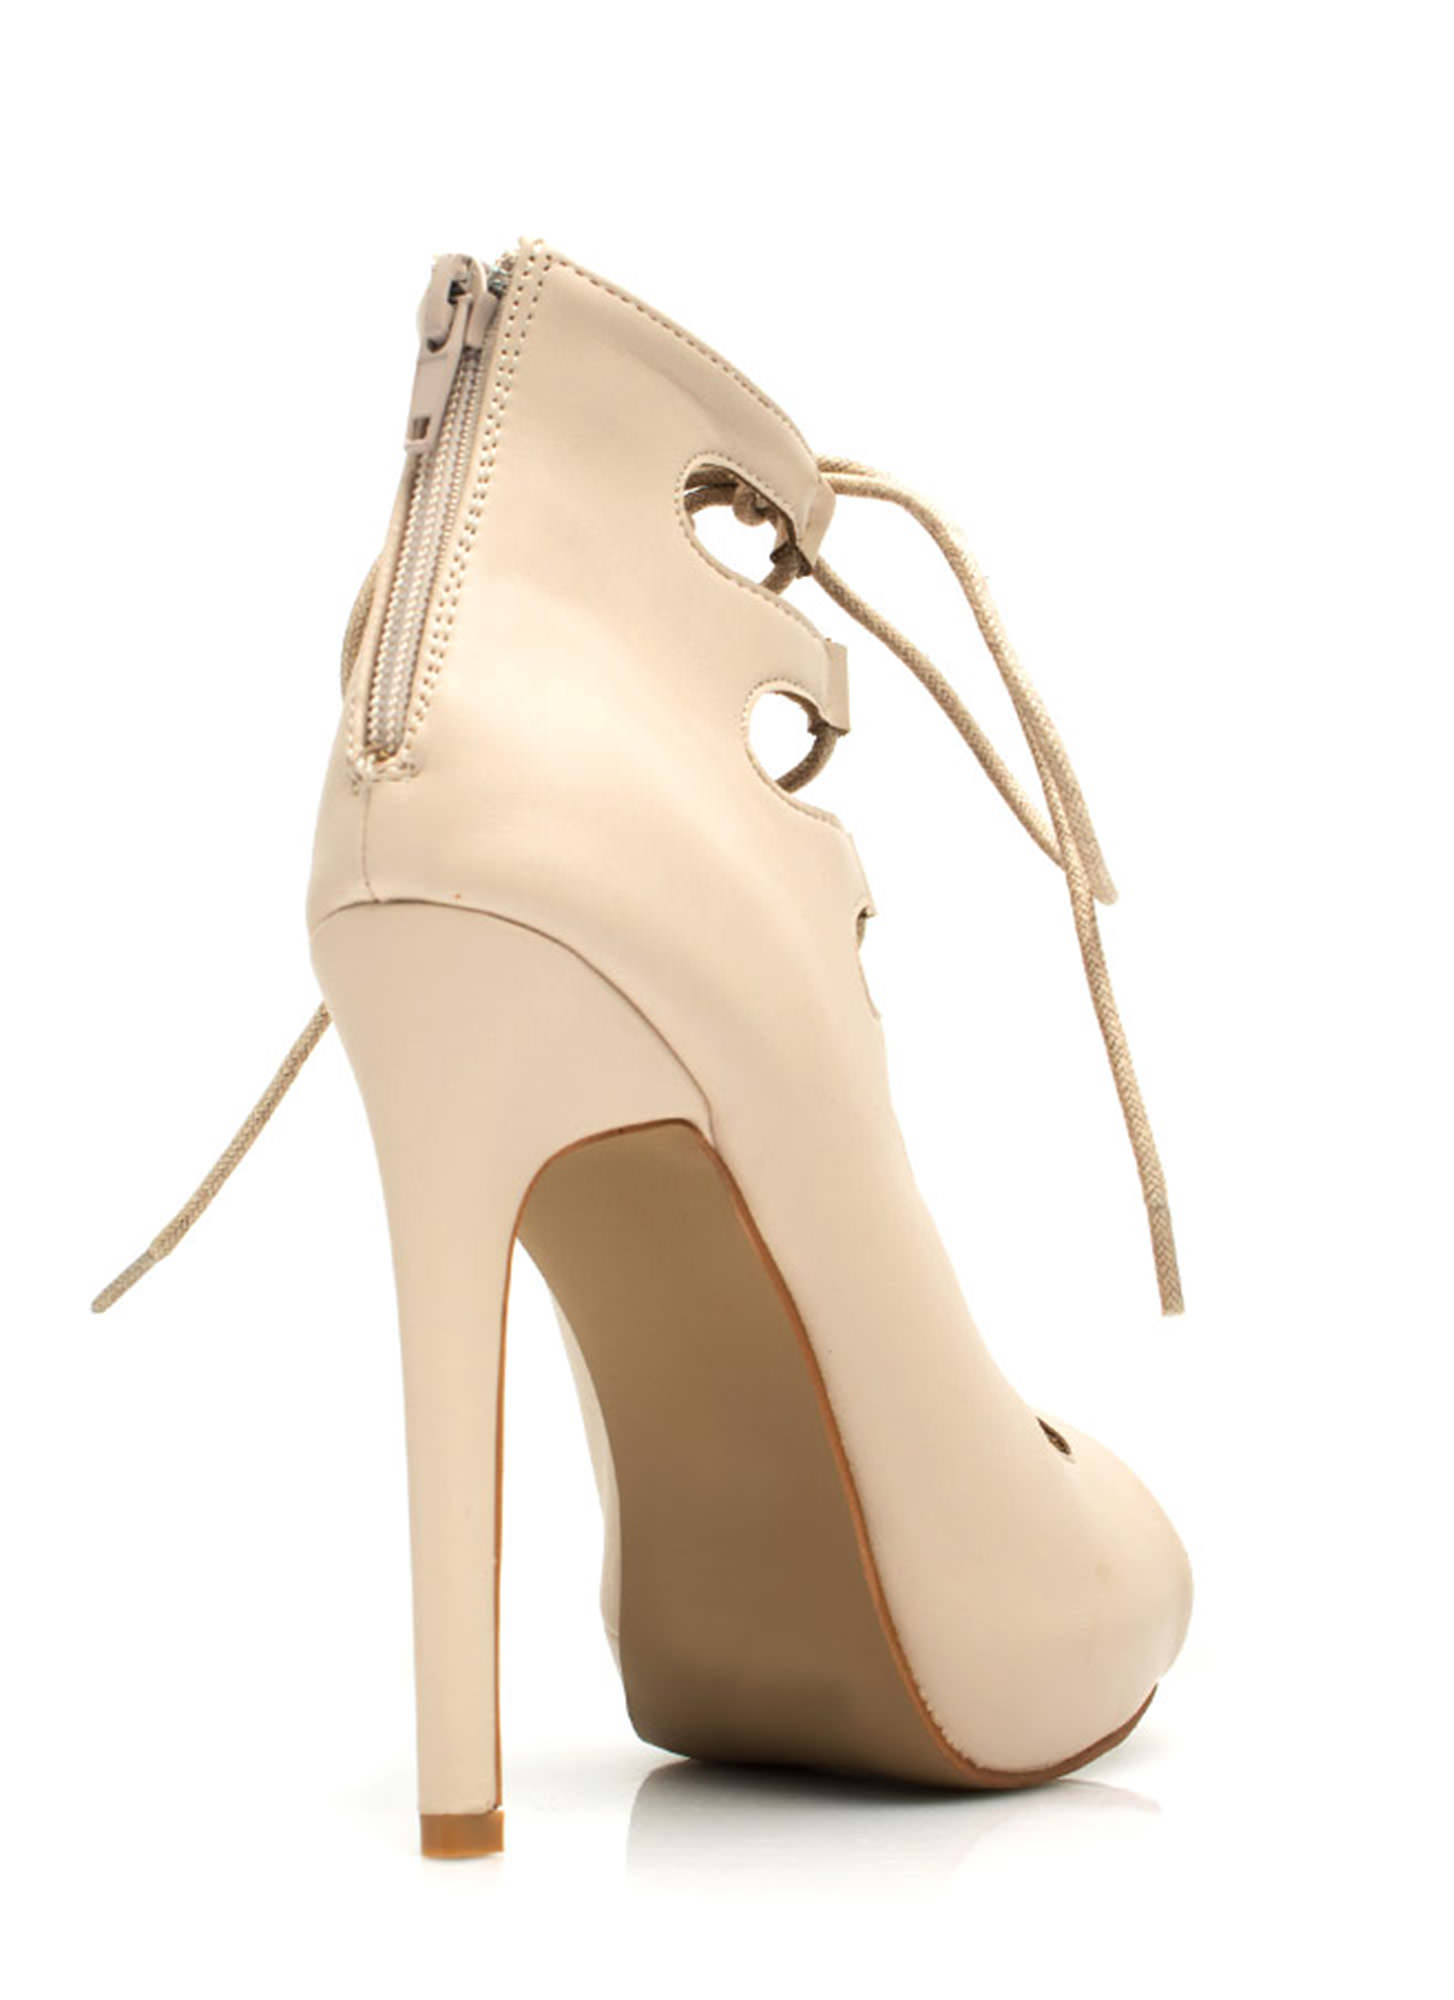 Corset It Off Lace-Up Cut-Out Heels NUDE